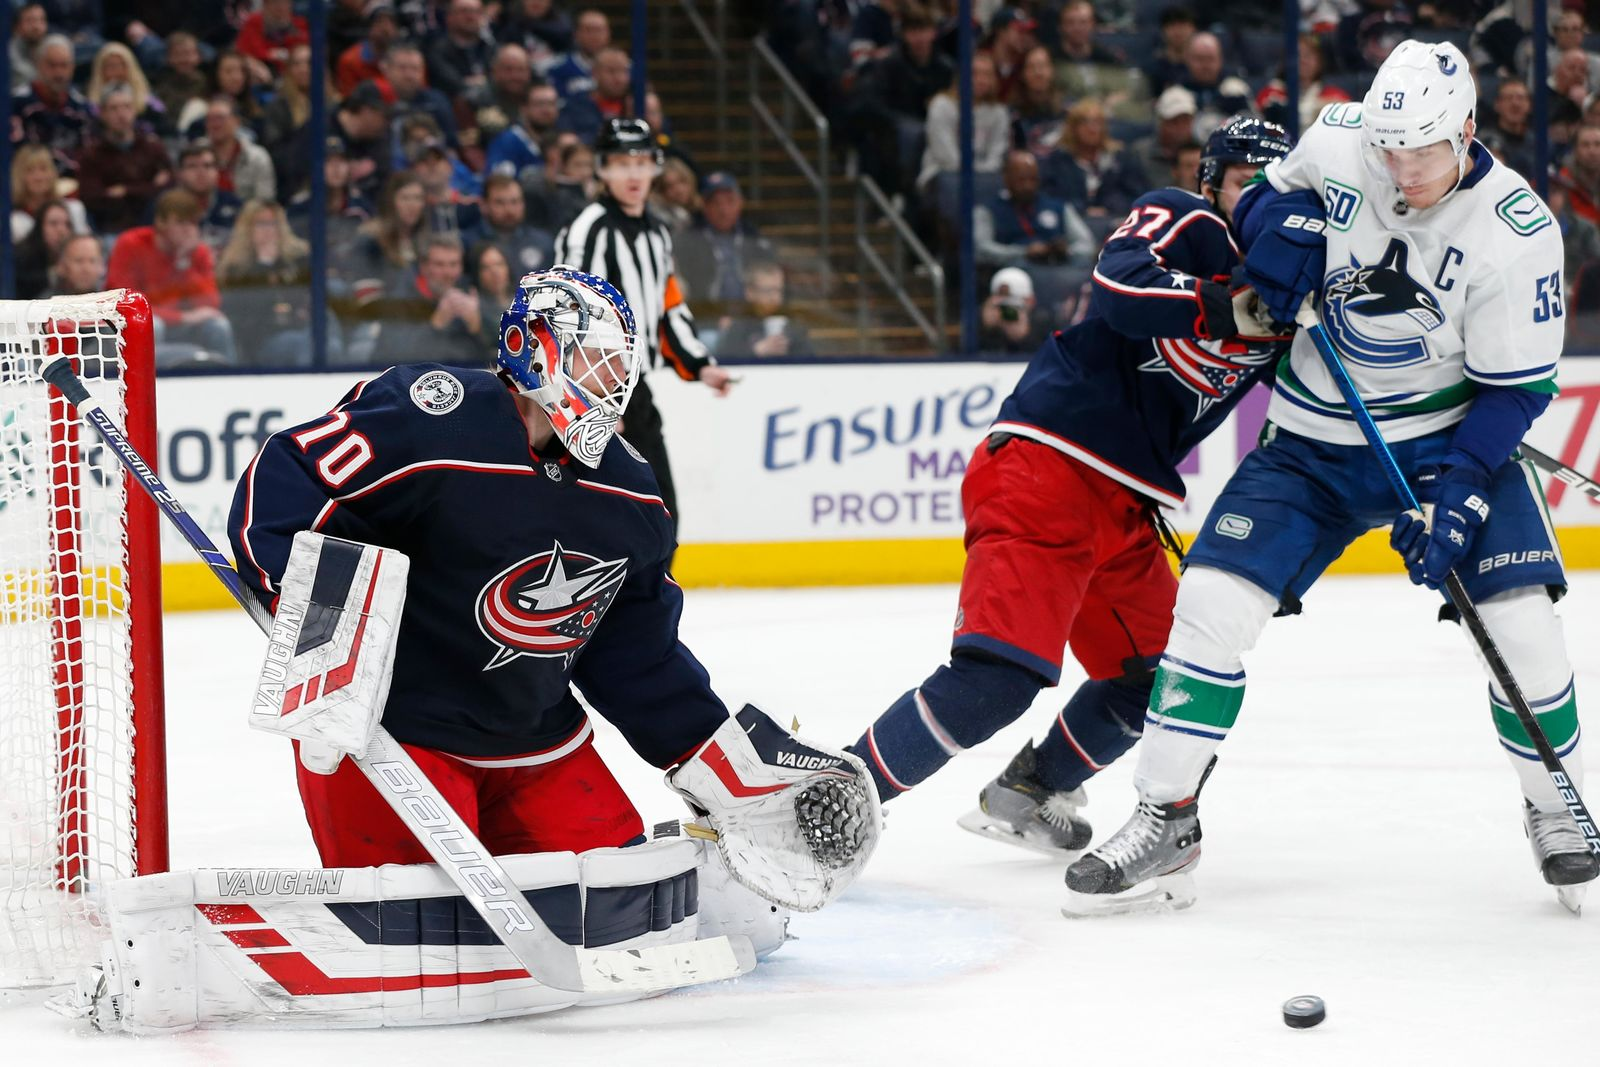 Columbus Blue Jackets' Joonas Korpisalo, left, of Finland, makes a save as teammate Ryan Murray, center, and Vancouver Canucks' Bo Horvat fight for position during the third period of an NHL hockey game Sunday, March 1, 2020, in Columbus, Ohio. The Blue Jackets defeated the Canucks 5-3. (AP Photo/Jay LaPrete)